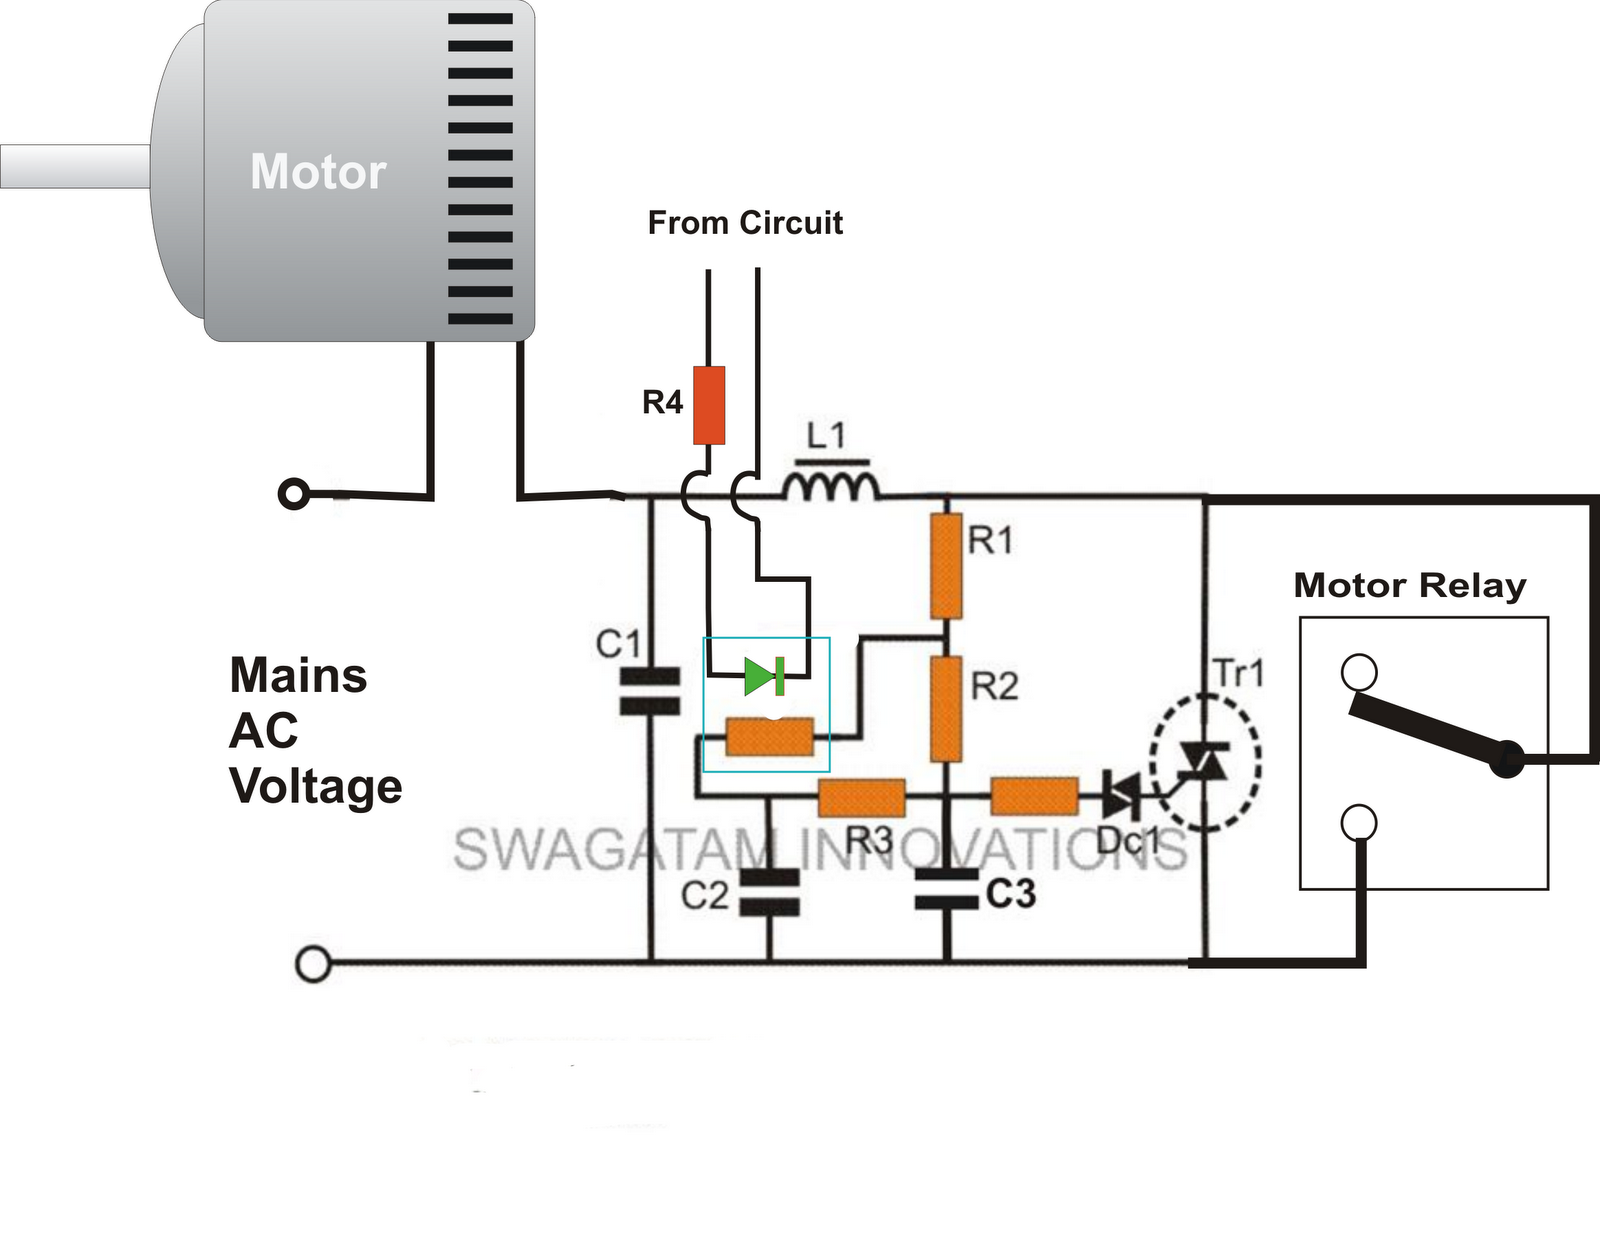 Scr As Half Wave Rectifier Ac Power Control Circuit Diagram Free Wiring For You Adding A Soft Start To Water Pump Motors Reducing Relay Controlled Battery Charger Schematics Transformerless